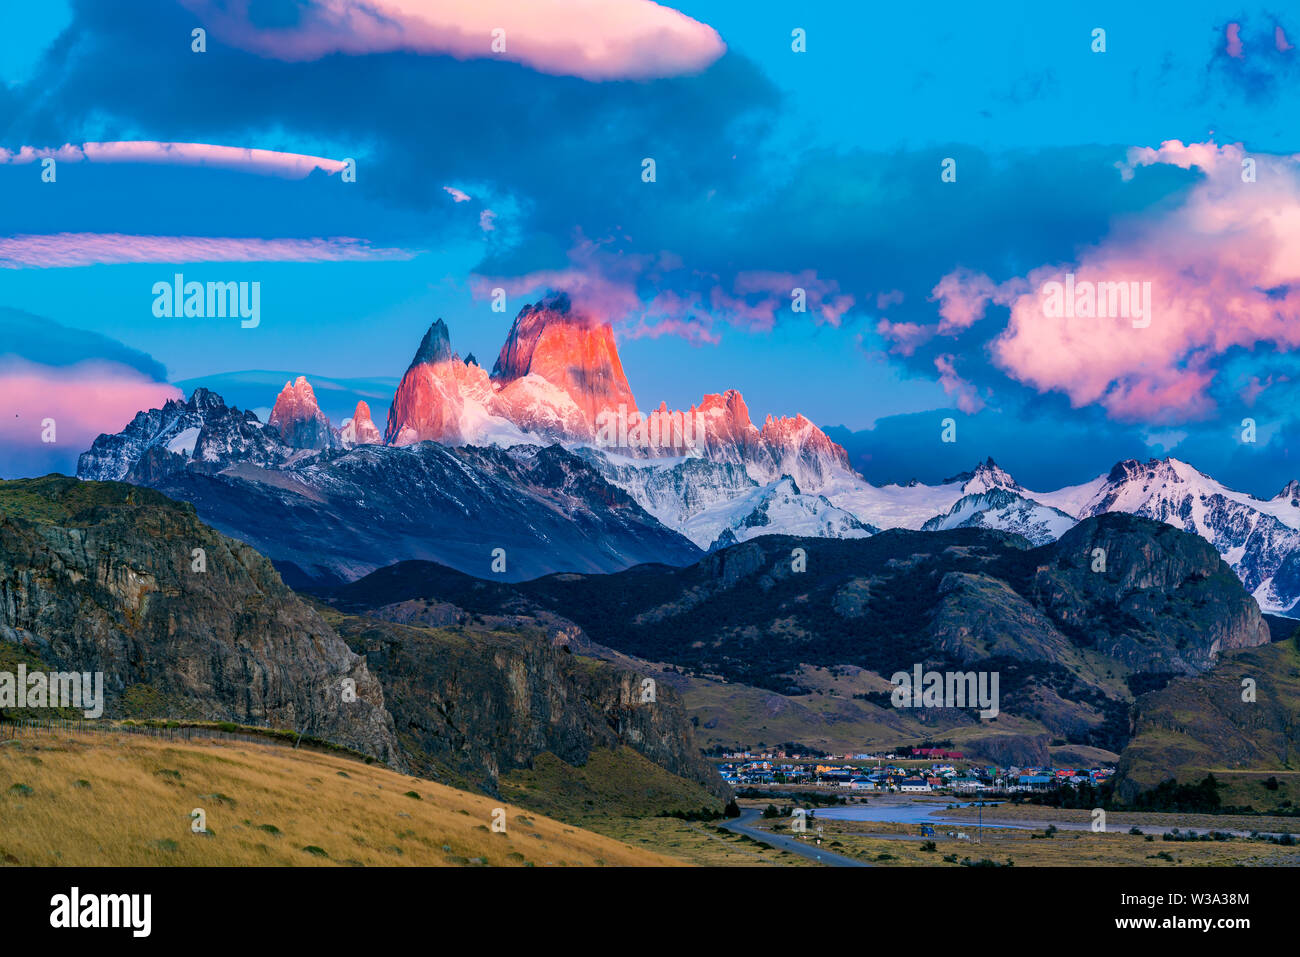 View of Mount Fitz Roy in the morning sunlight at El Chalten Village in the Los Glaciares National Park, Argentina - Stock Image